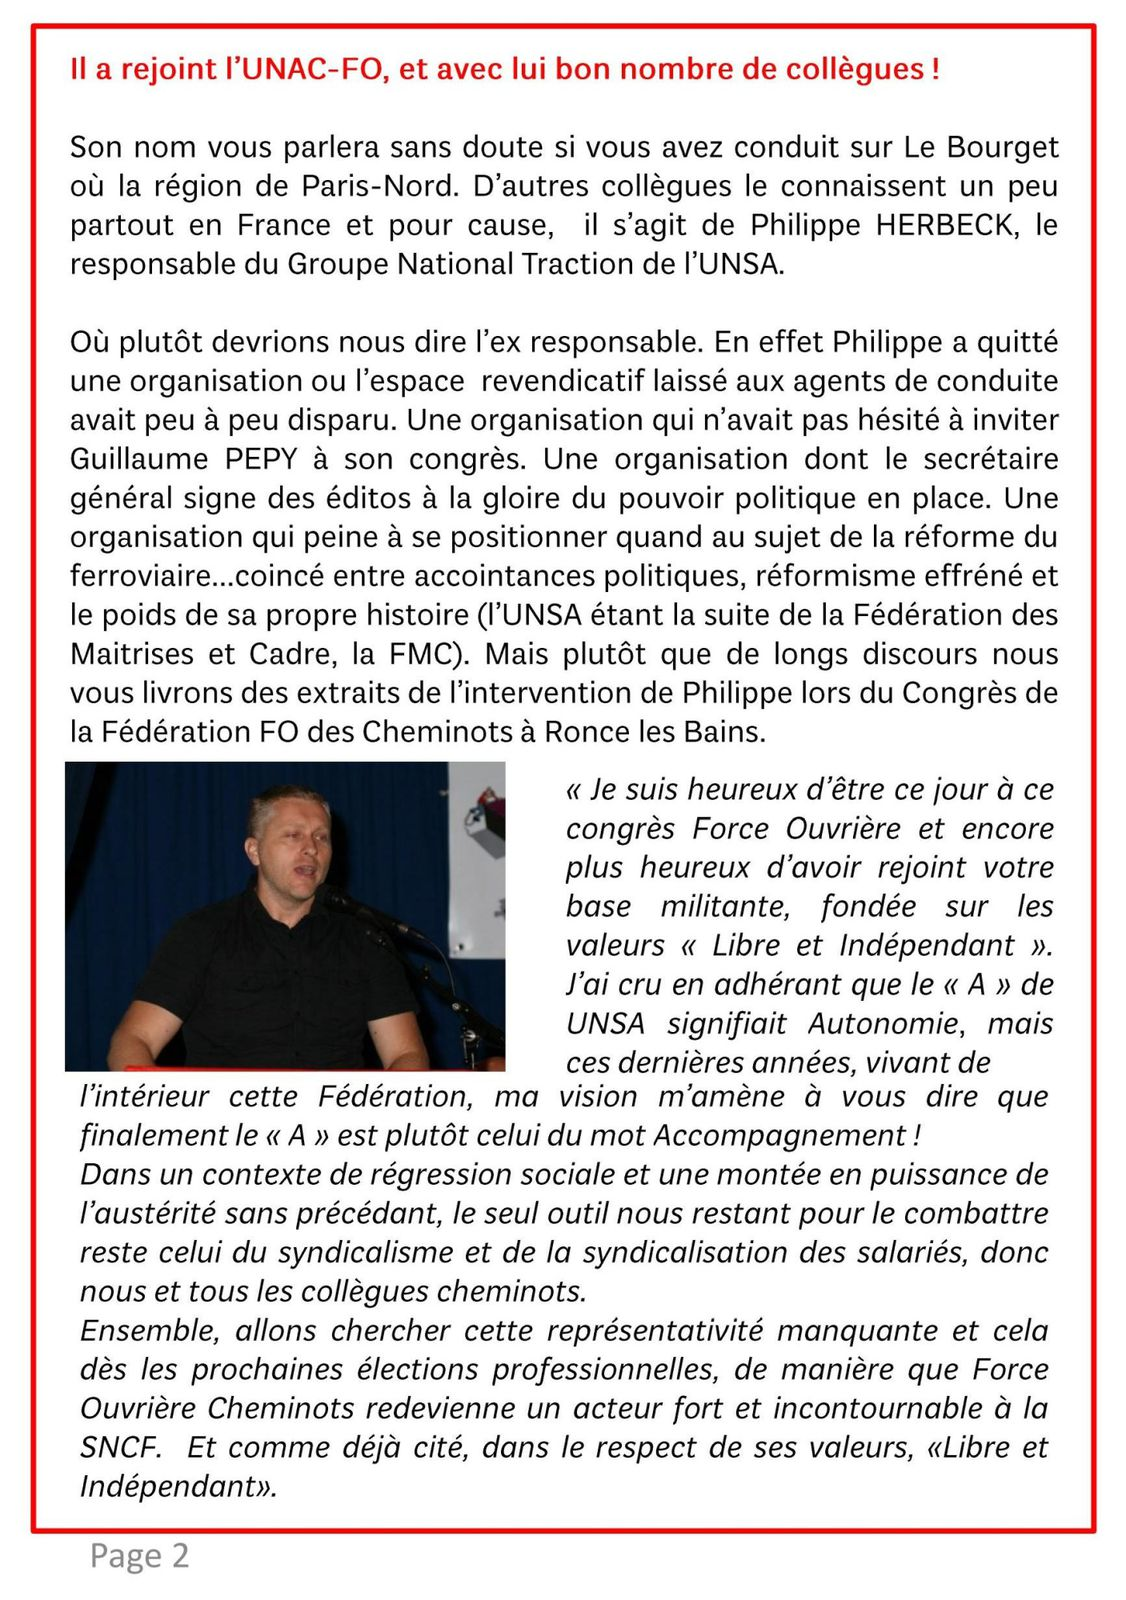 TRACTIONNAIRE OCTOBRE- 26 10 2013